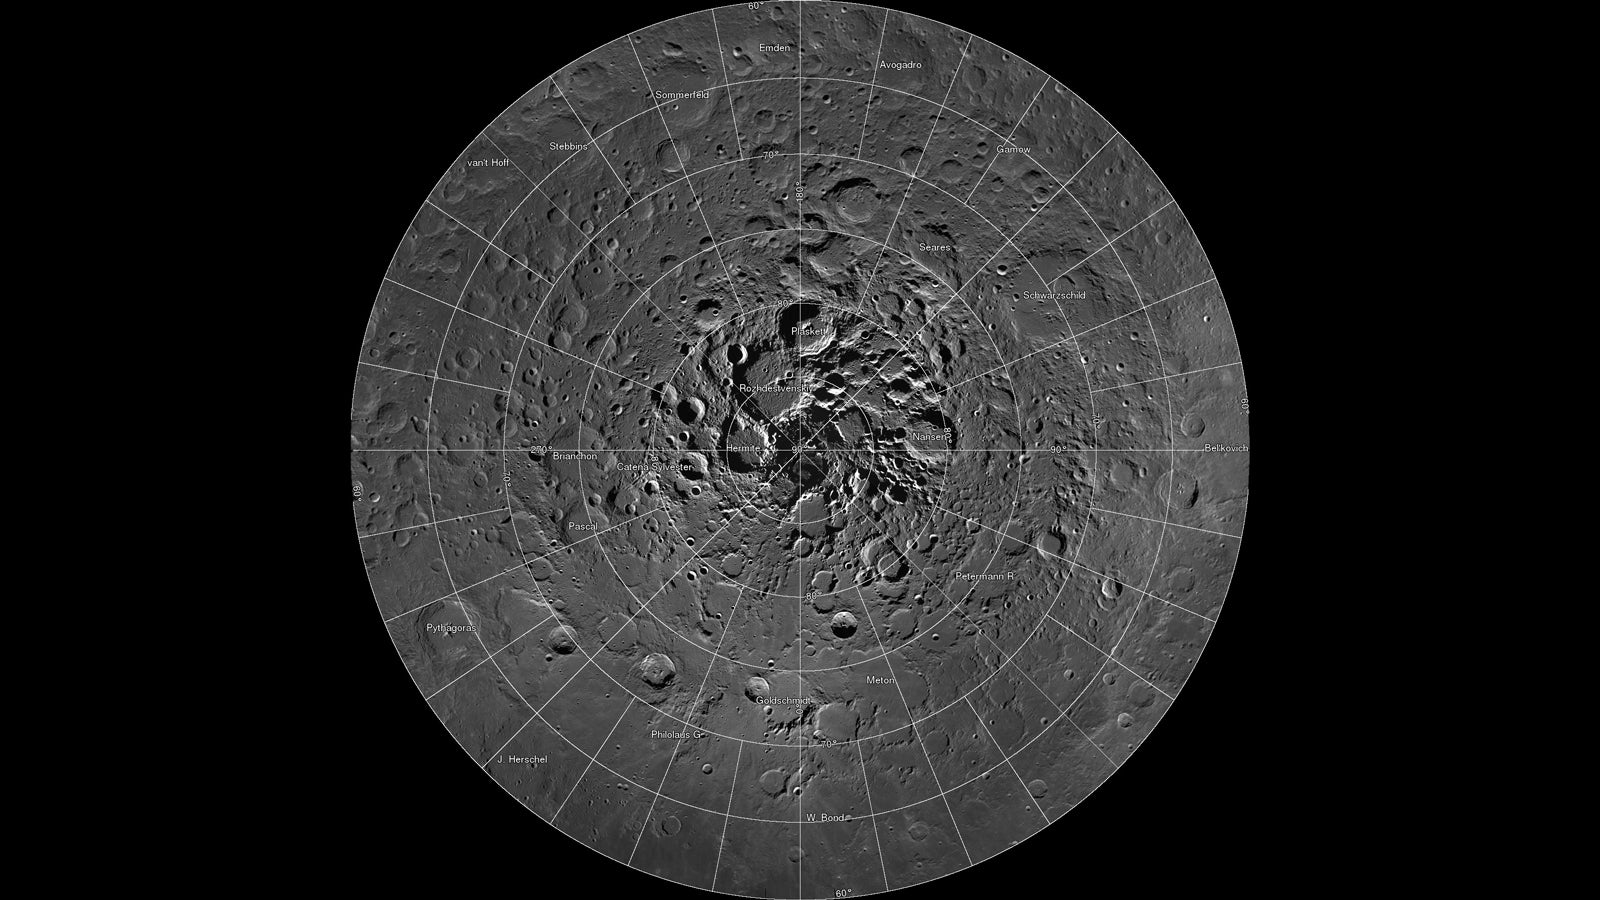 Explore the Moon's North Pole With This Gargantuan Photo Mosaic